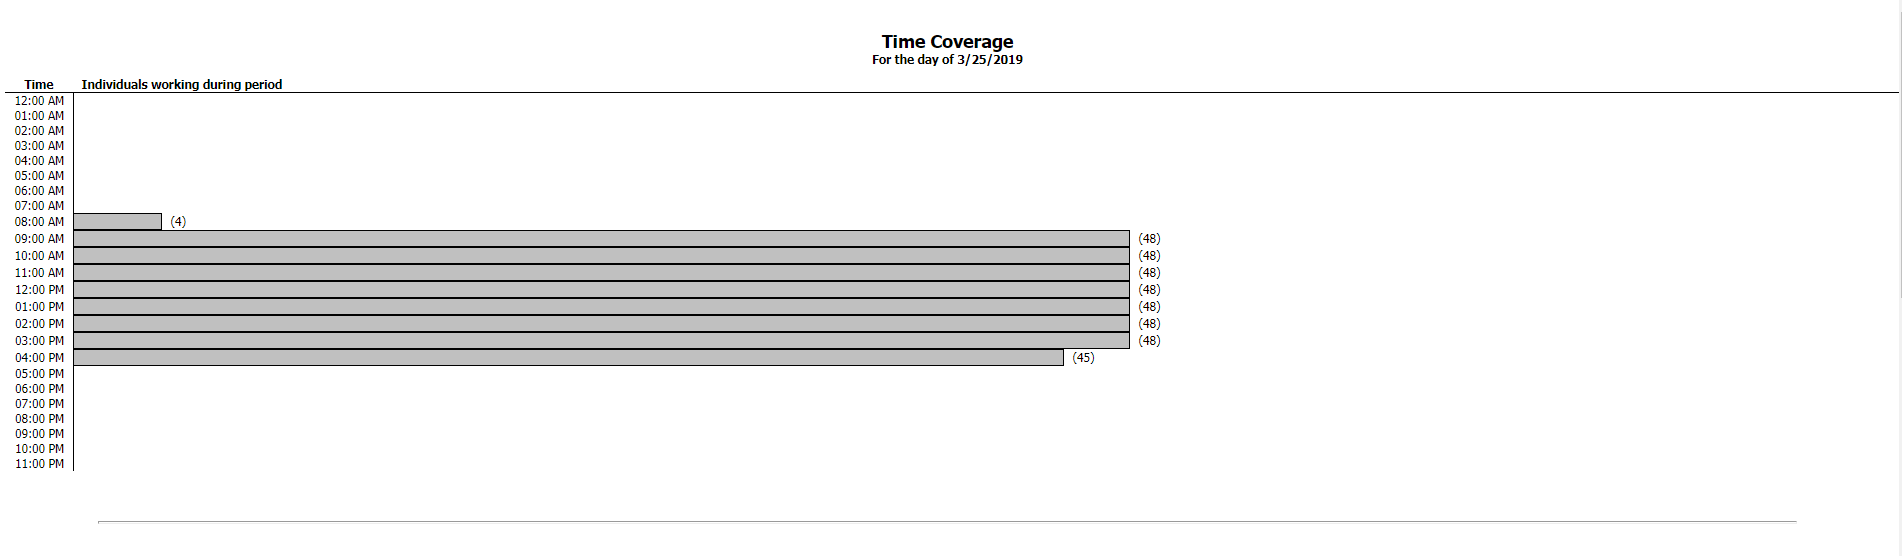 Time Coverage